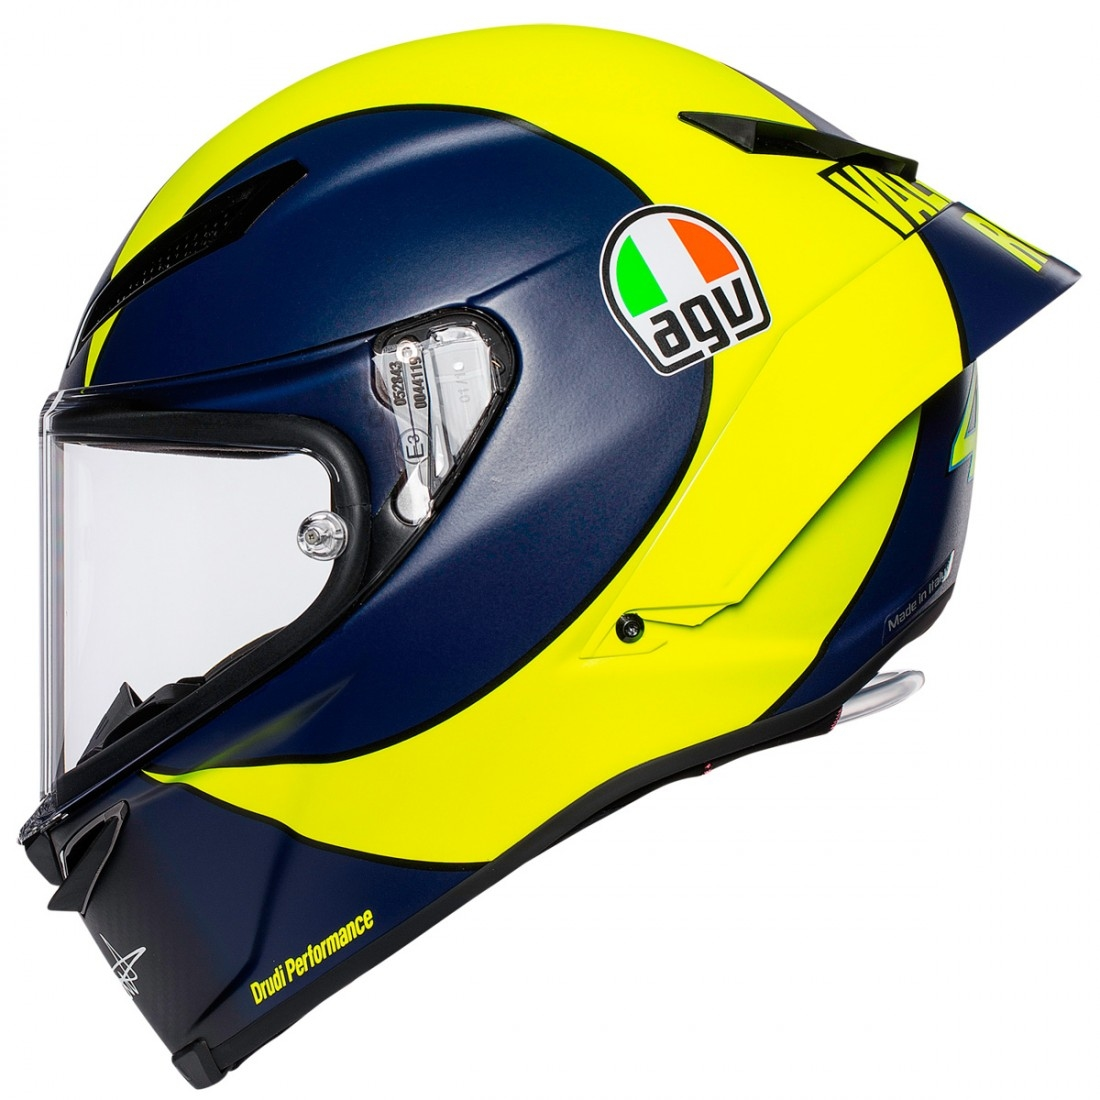 agv pista gp r rossi soleluna 2018 helmet motocard. Black Bedroom Furniture Sets. Home Design Ideas